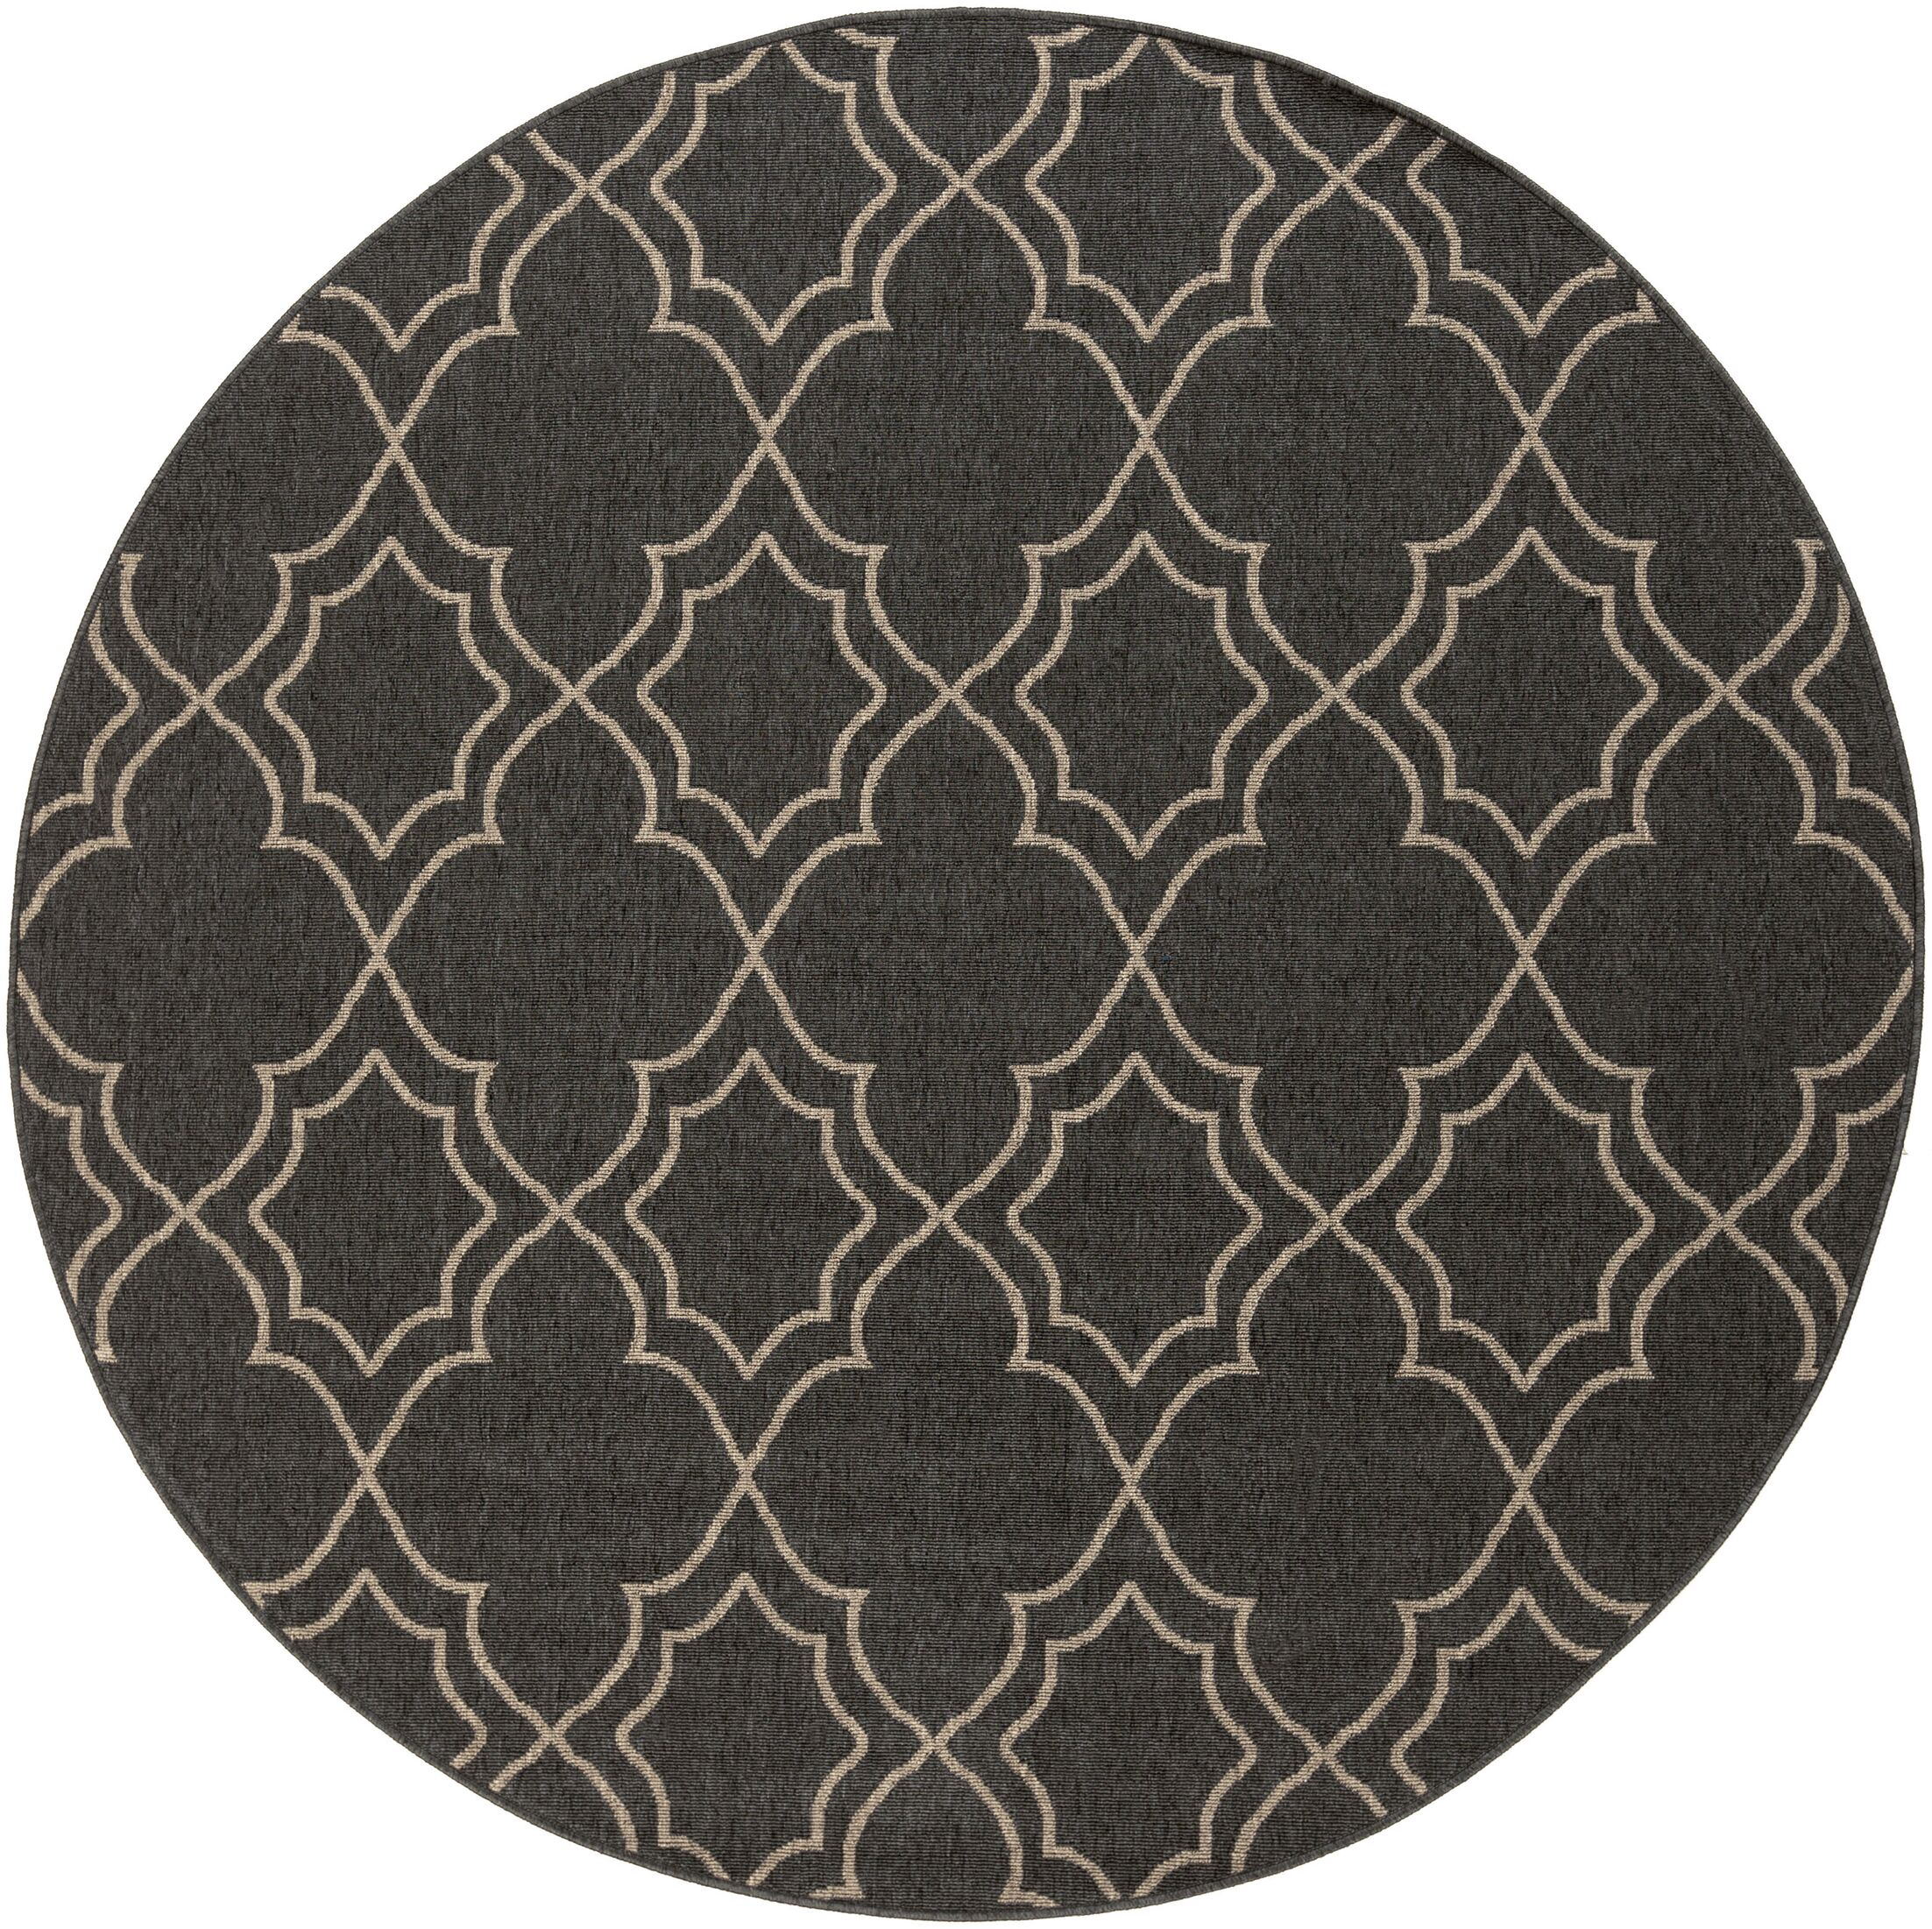 Amato Taupe Indoor/Outdoor Area Rug Rug Size: Round 5'3